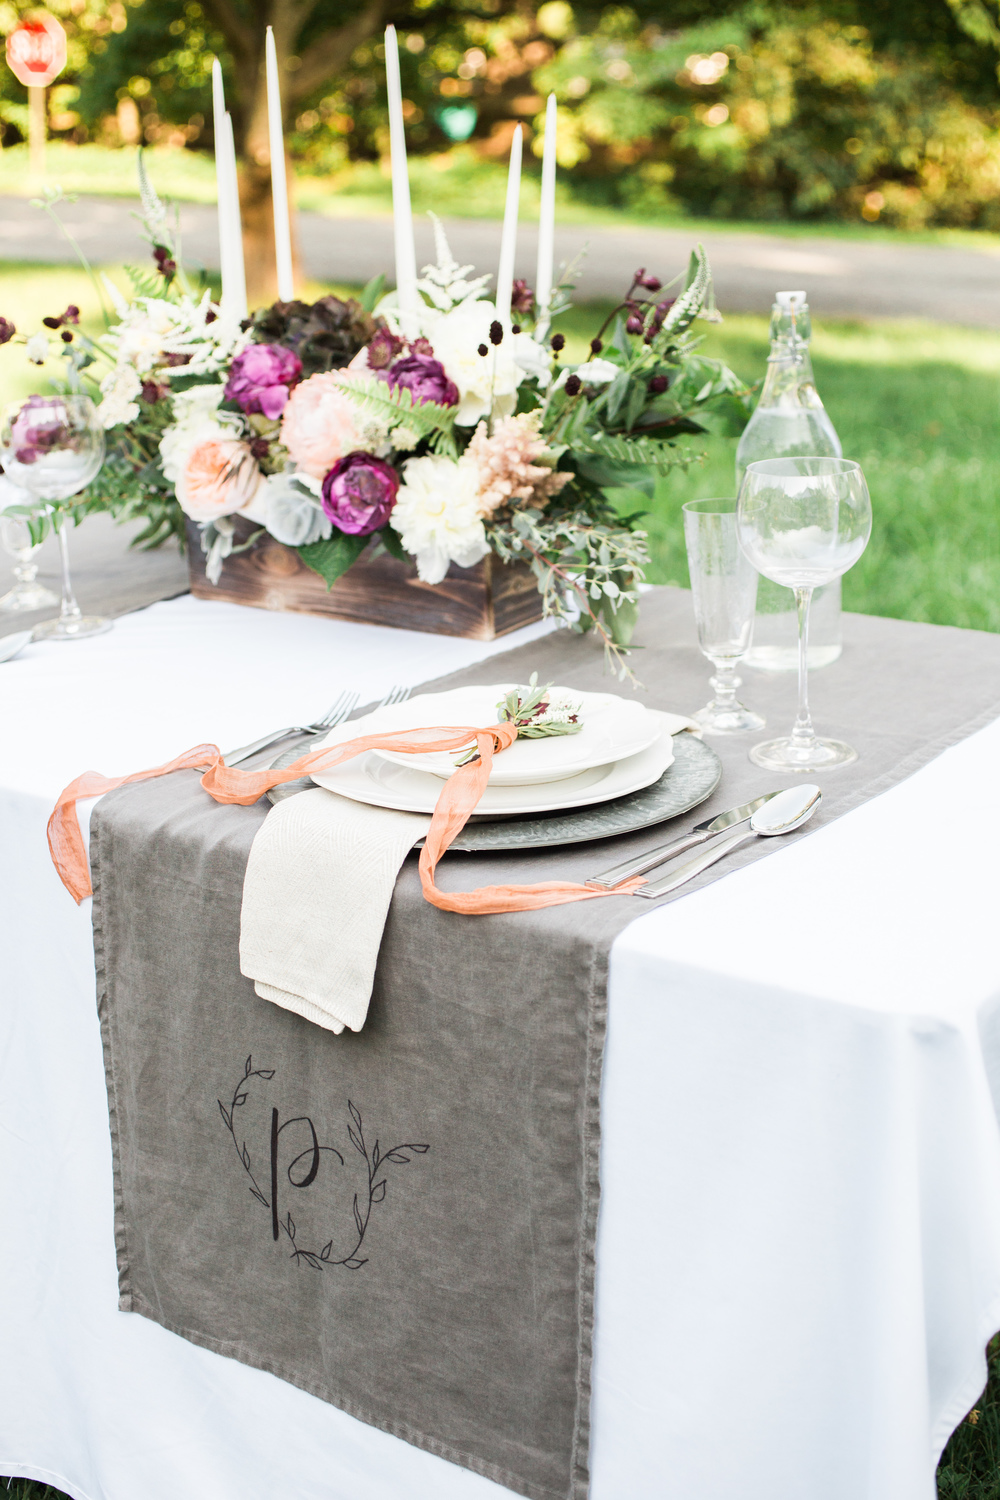 Hudson-Nichols-Vineyard-Wedding-Place-Setting-Ribbon-Flowers-0191.jpg